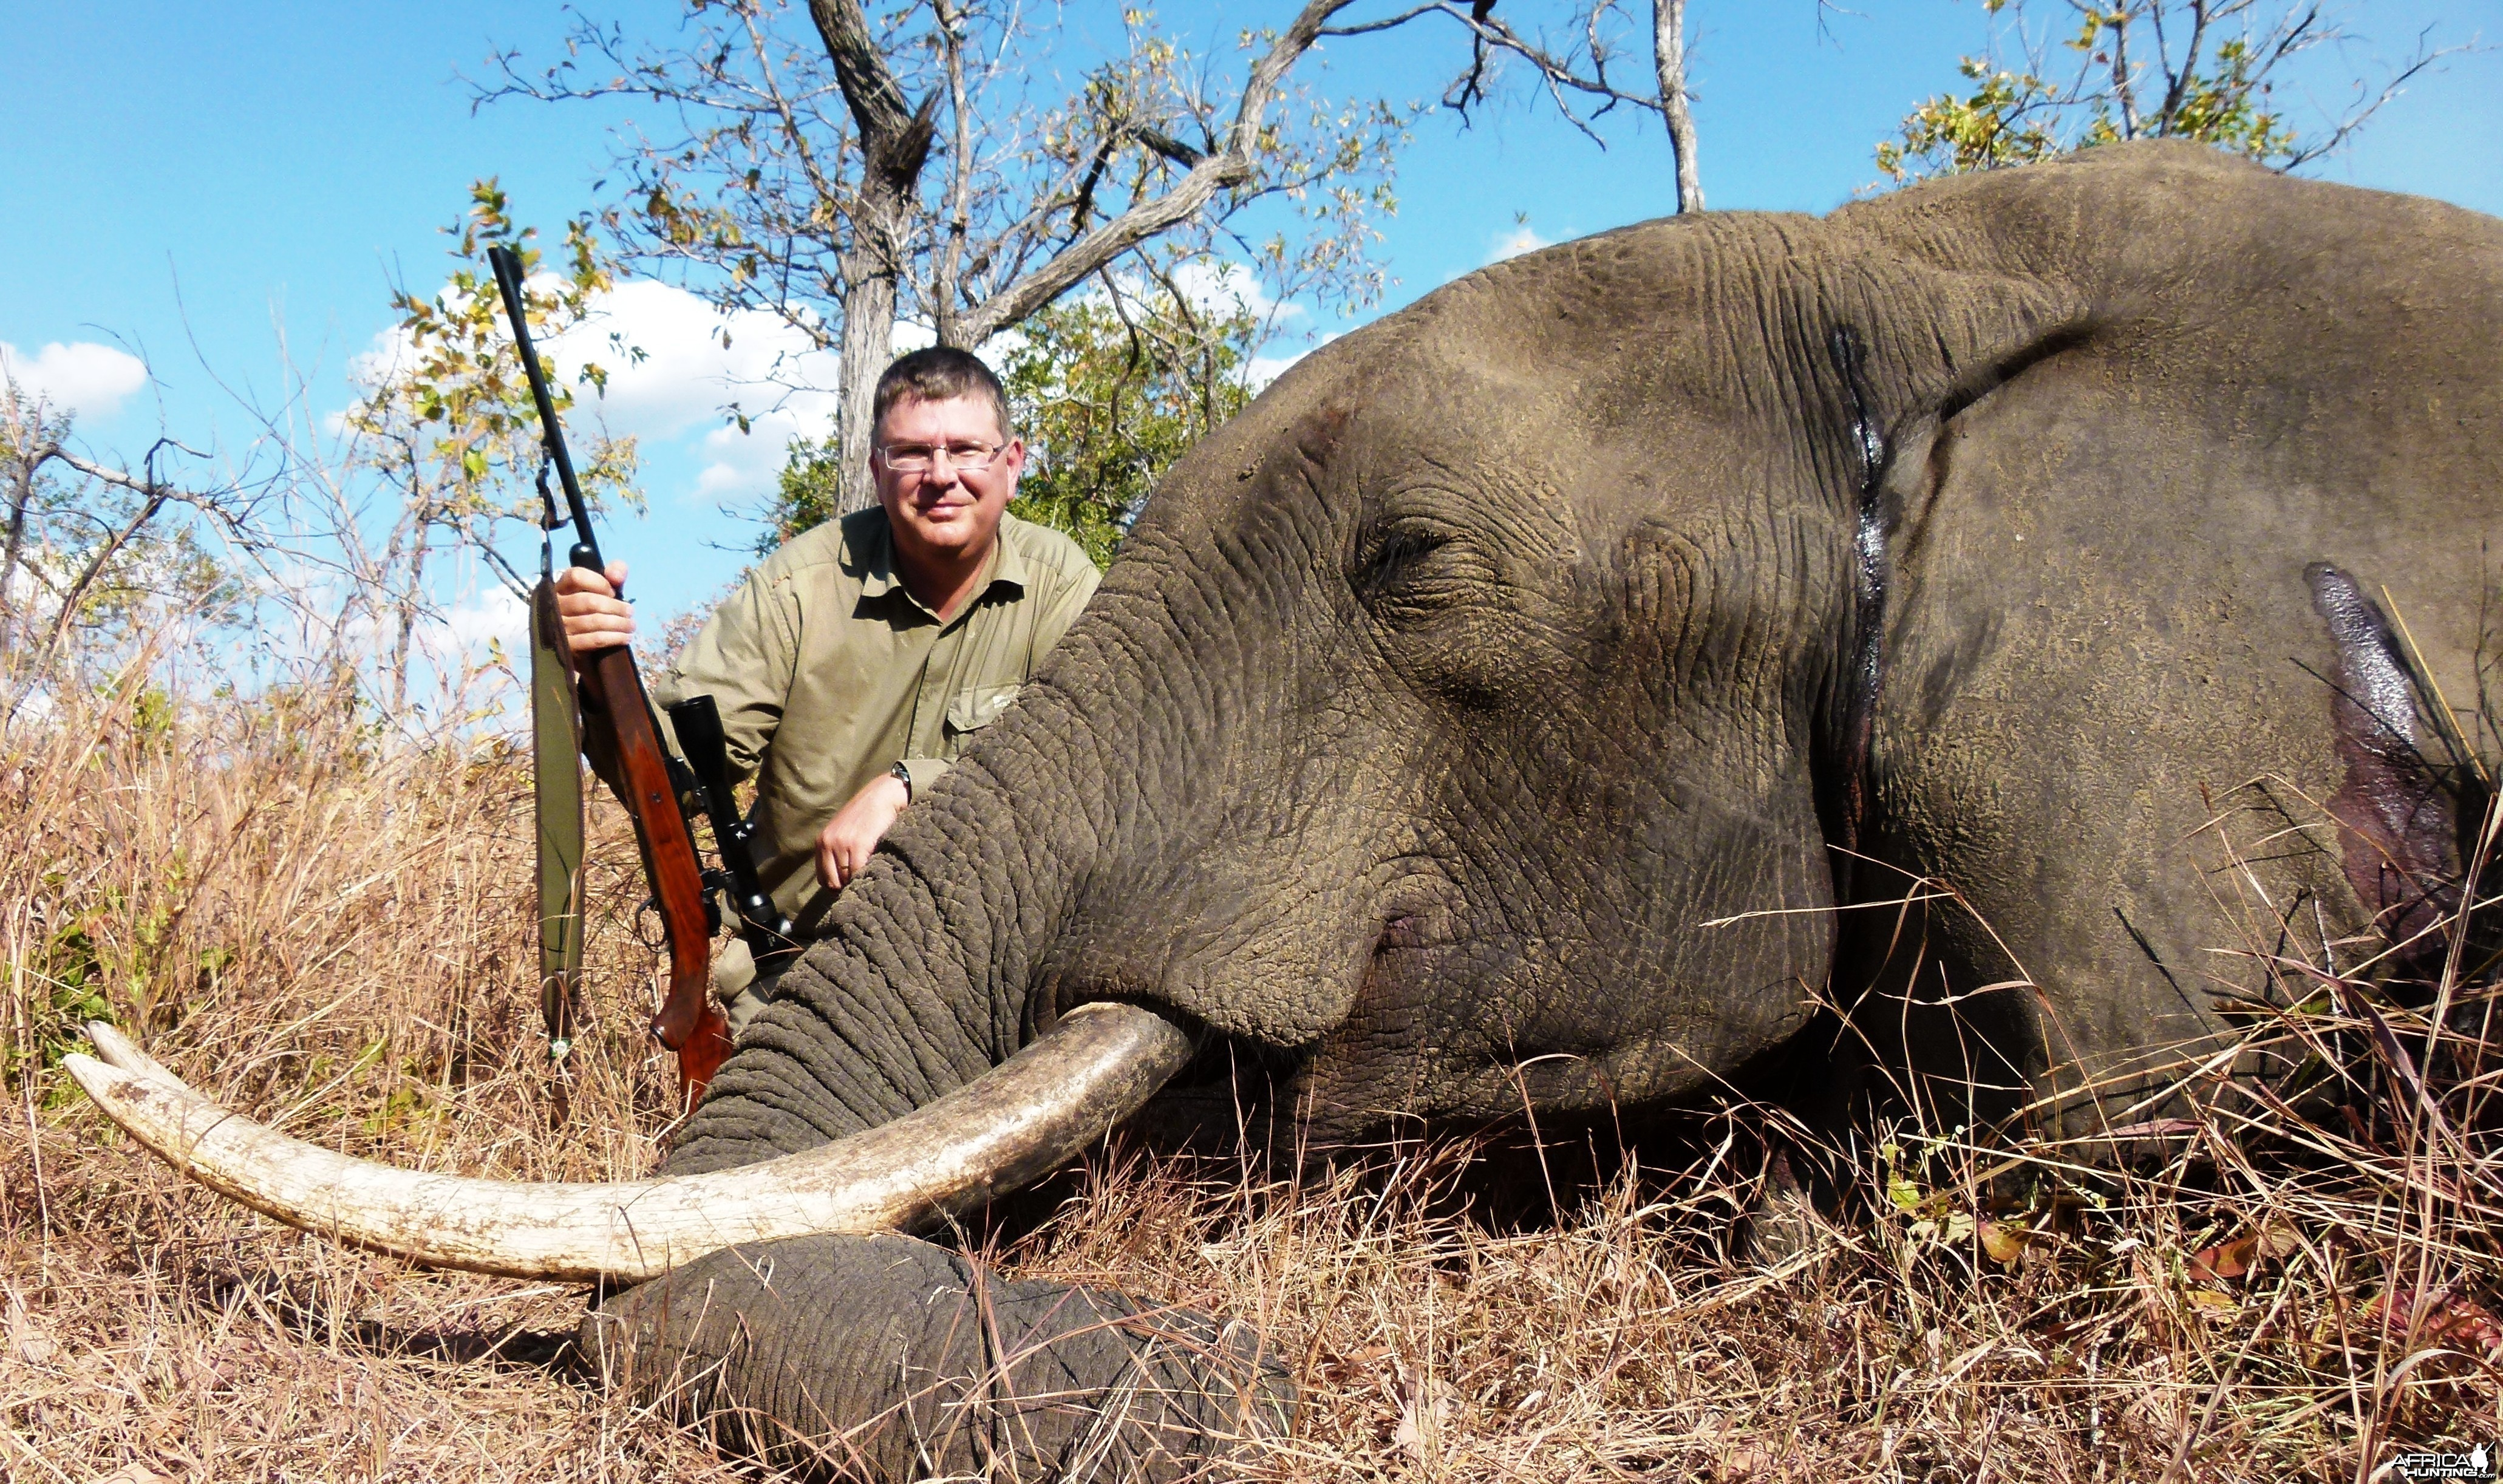 Brain shot on Elephant... Tanzania